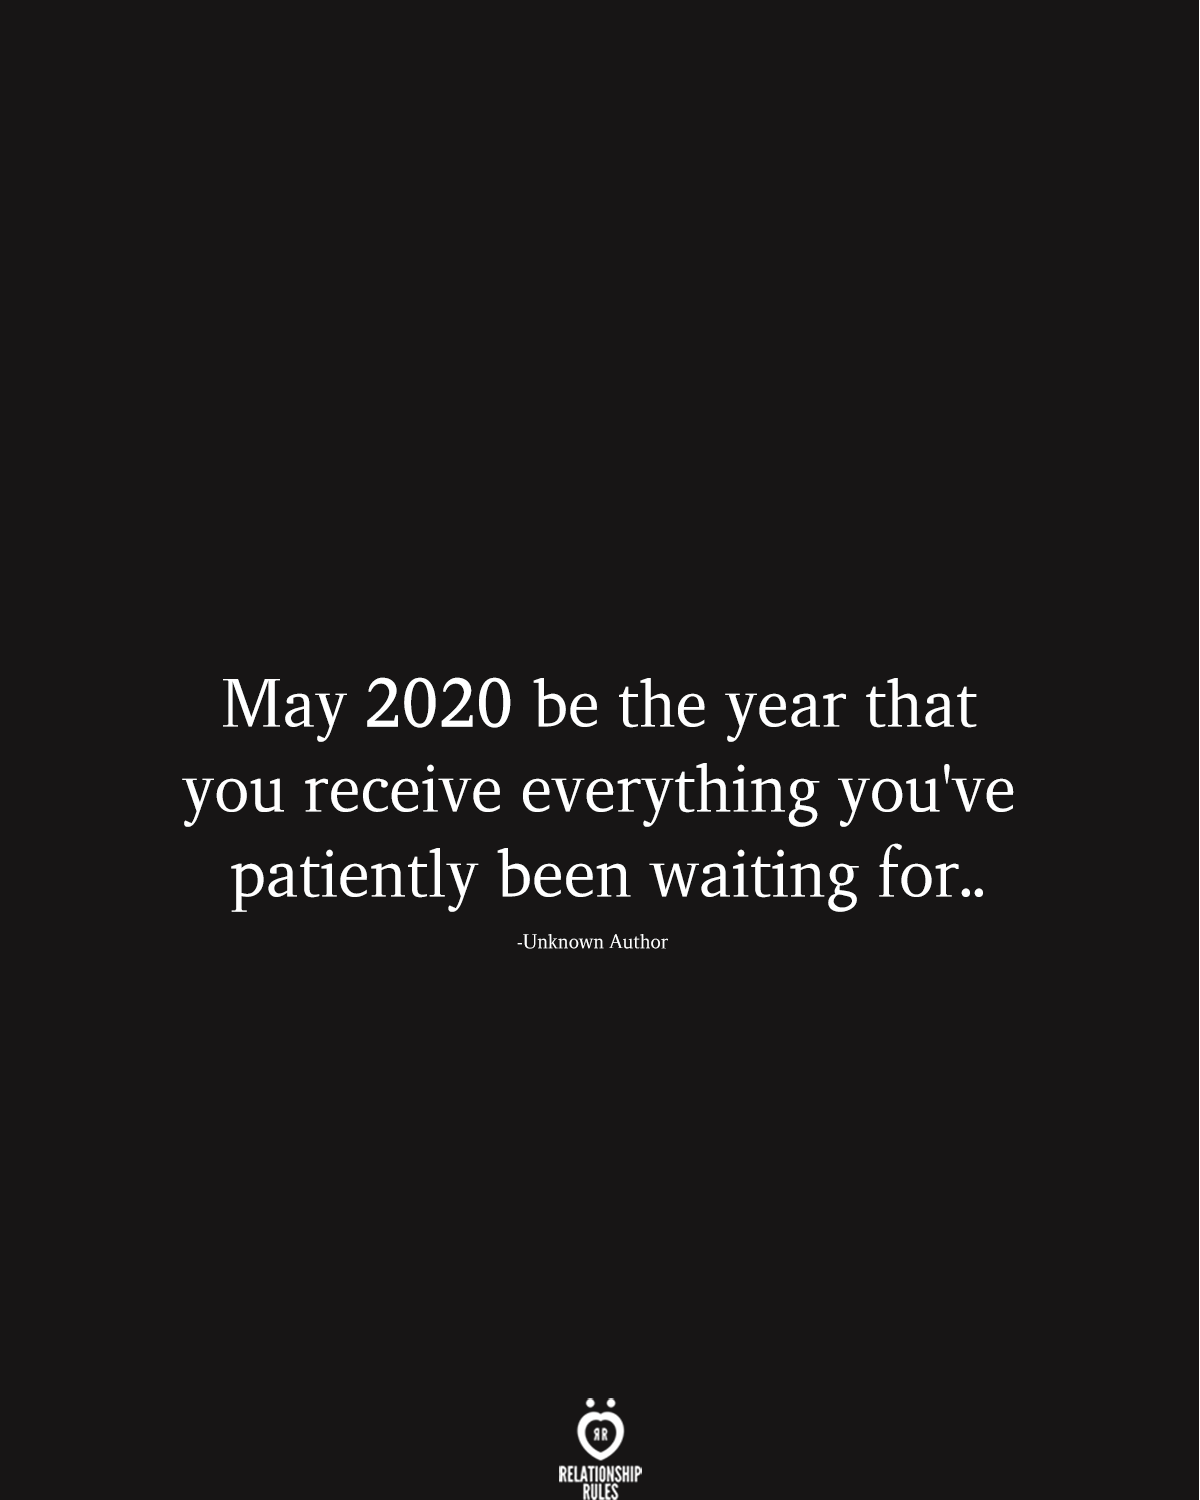 May 2020 Be The Year That You Receive Everything You Ve Patiently